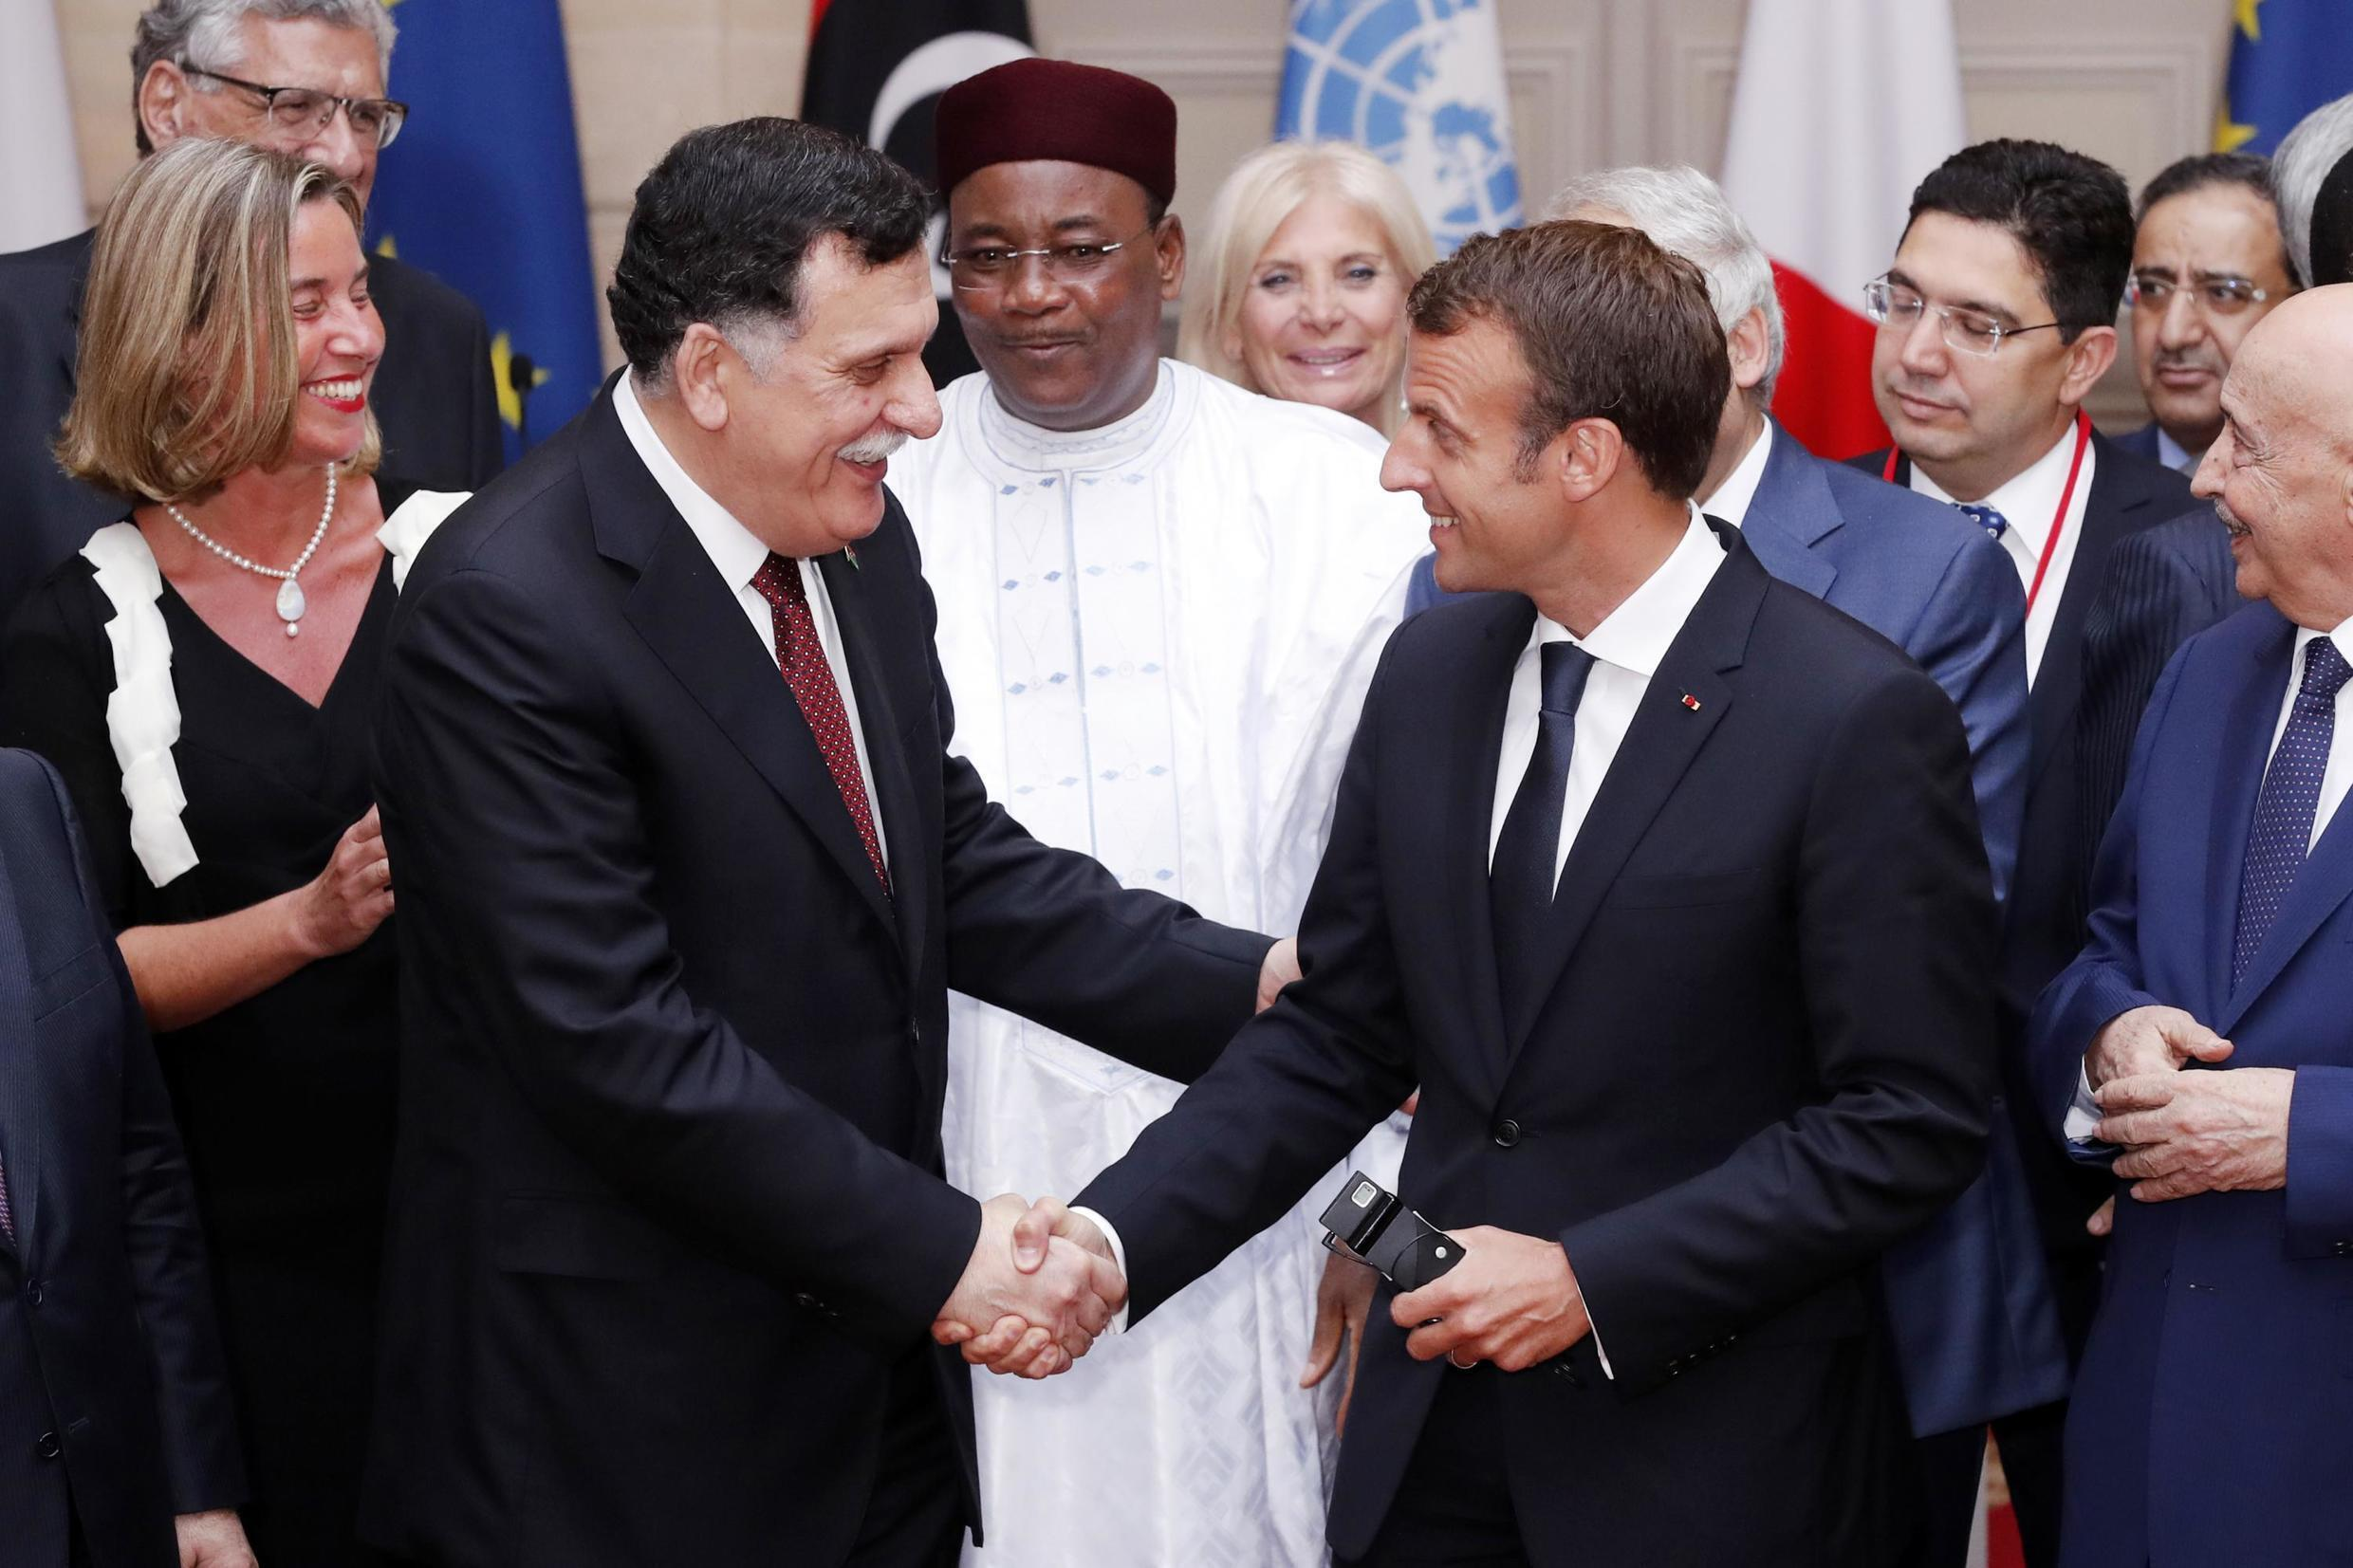 Prime Minister Fayez al-Sarraj shakes hands with French President Emmanuel Macron at International Conference on Libya at the Elysee Palace in Paris, 29 May 29 2018.